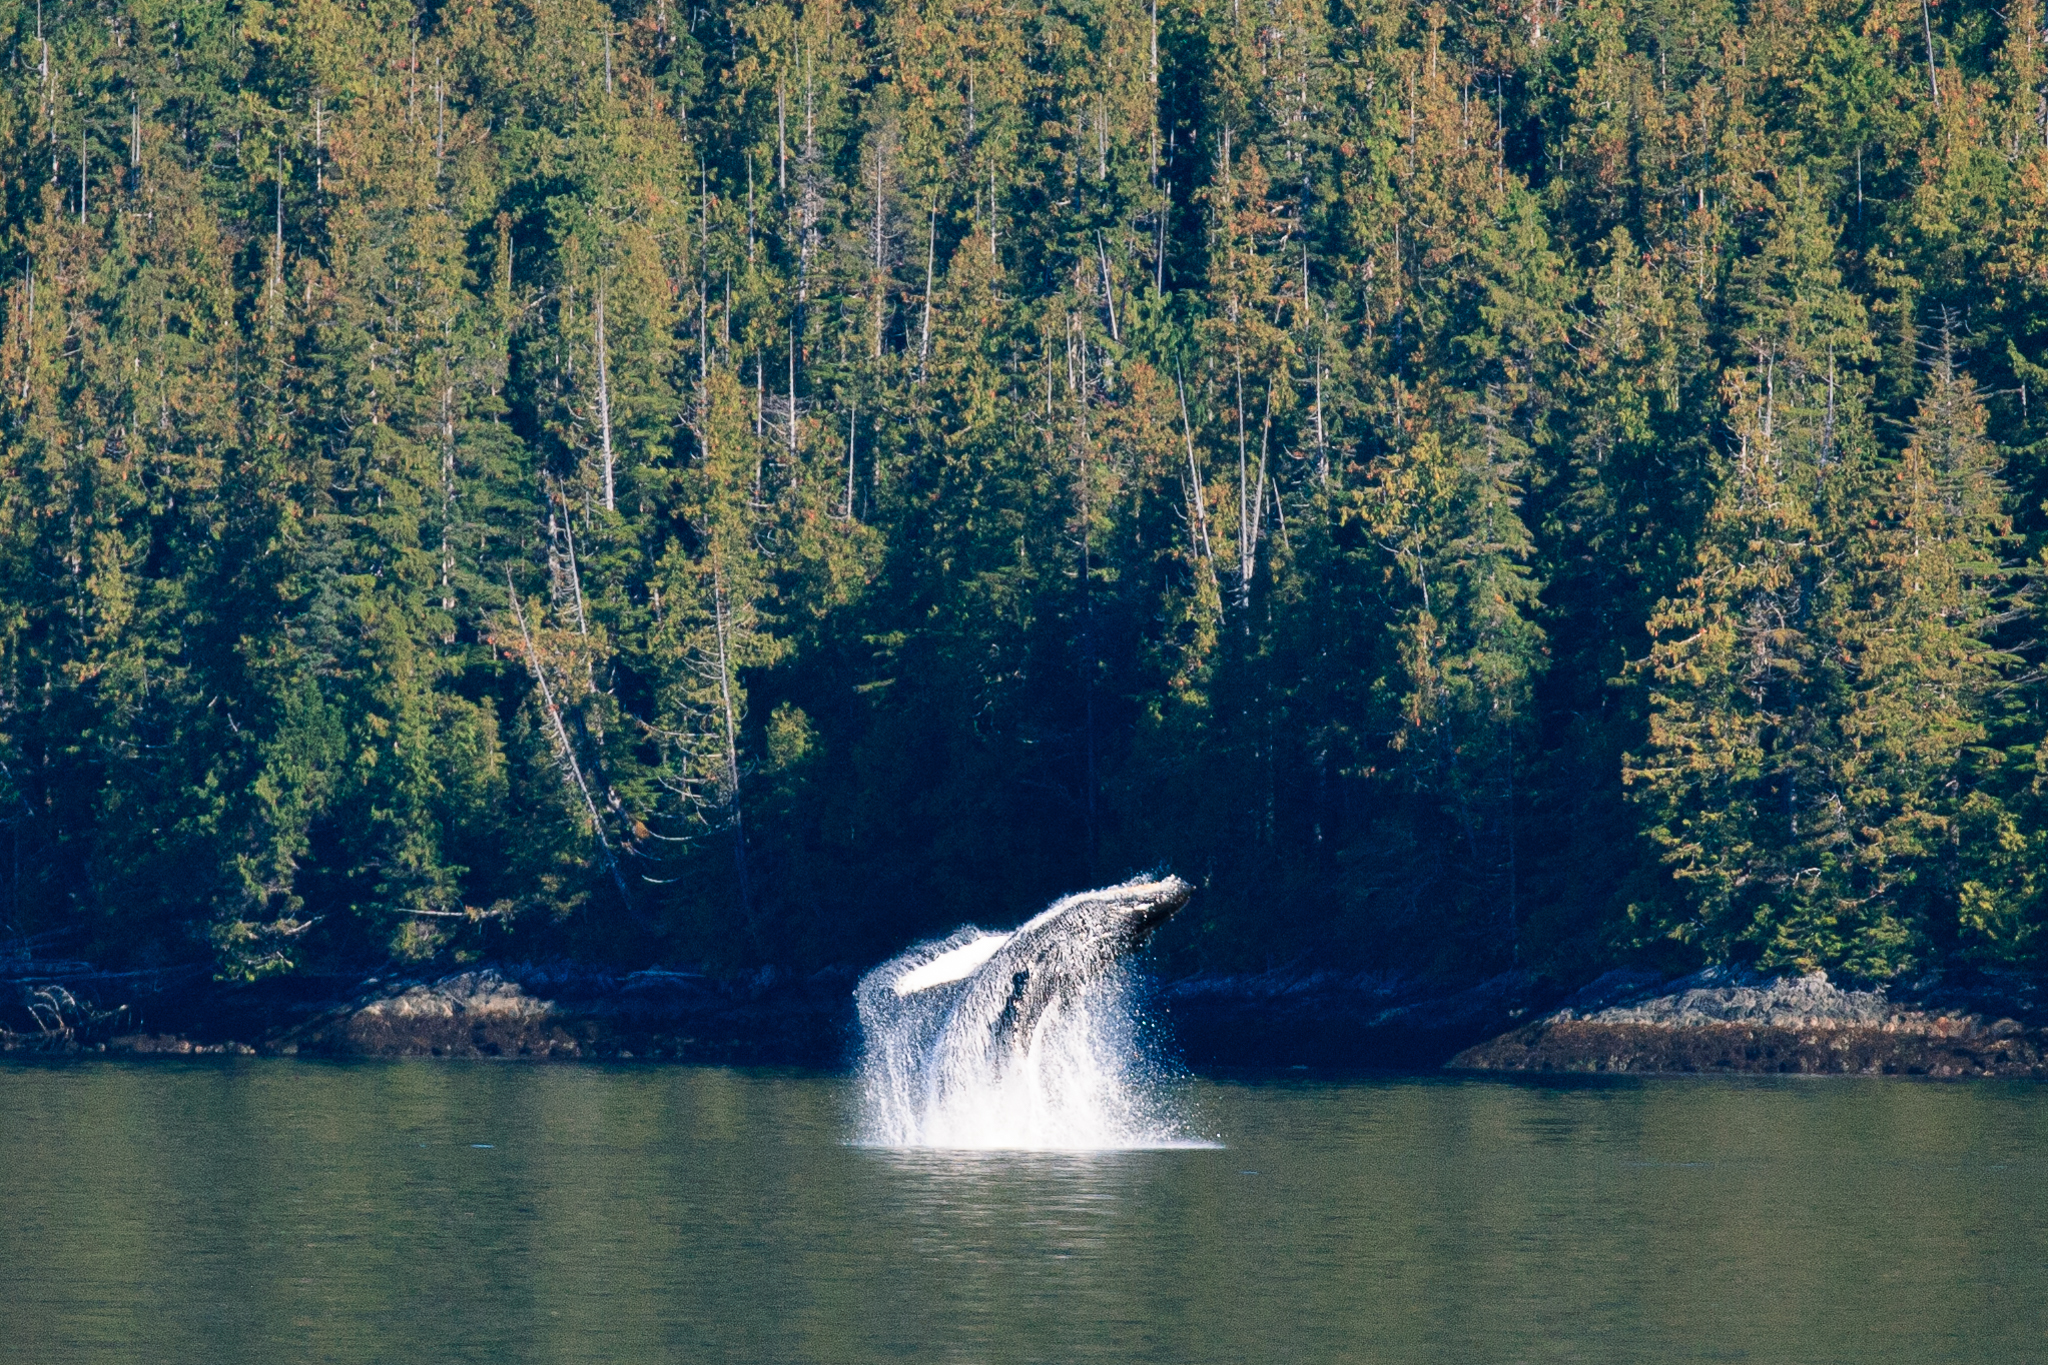 A humpback whale breaches just off the coast of British Columbia's Great Bear Rainforest.